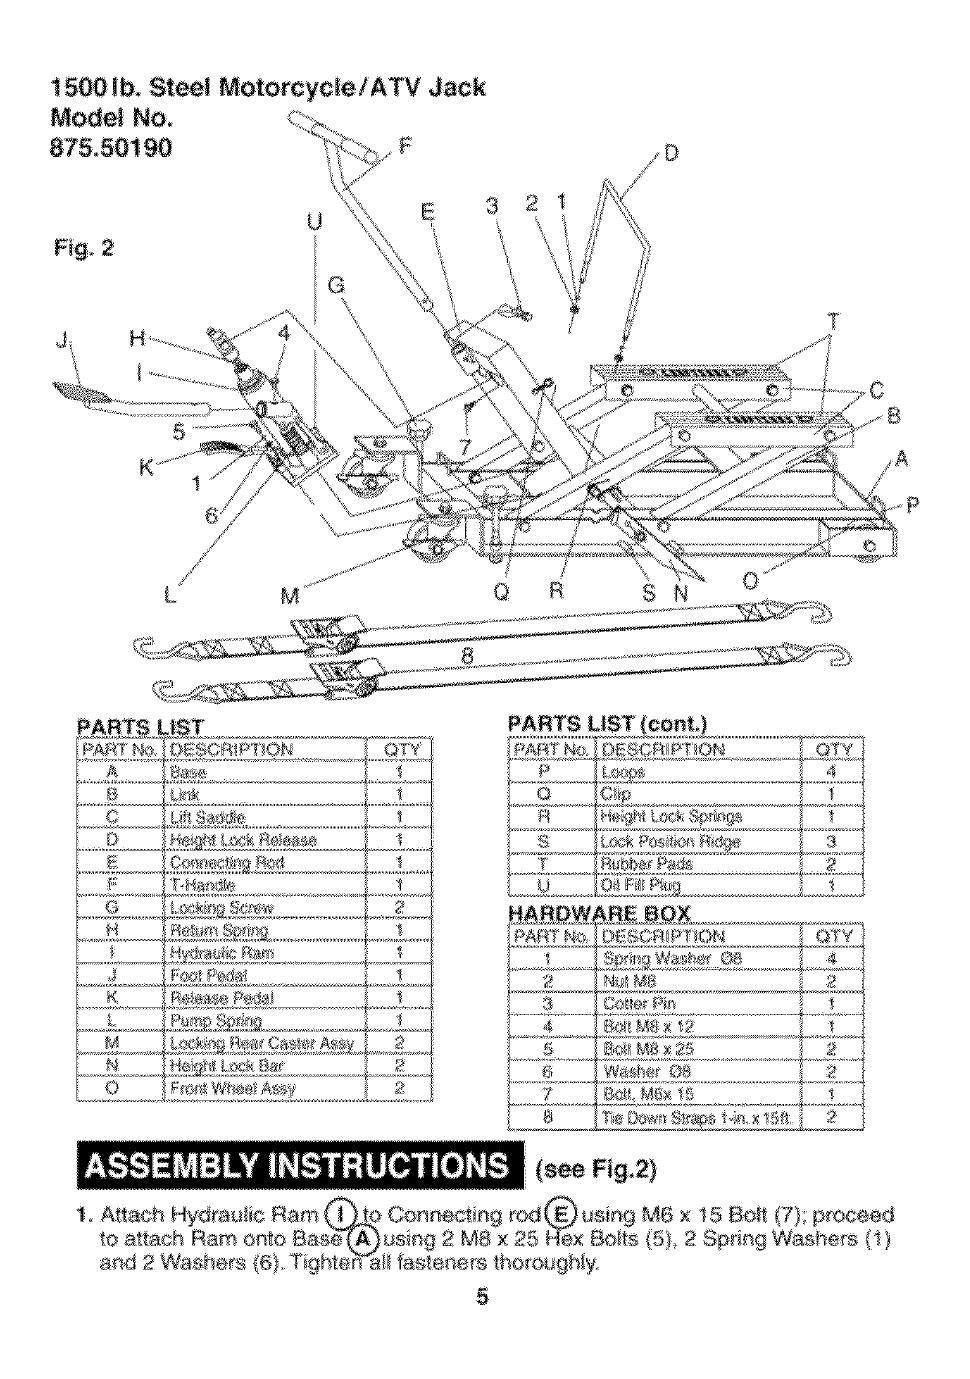 Hydraulic Motorcycle Lift Schematic Trusted Wiring Diagrams \u2022  Elevators Hydraulic Circuit Schematics For Dummies Car Lift Hydraulic Schematic  Diagram